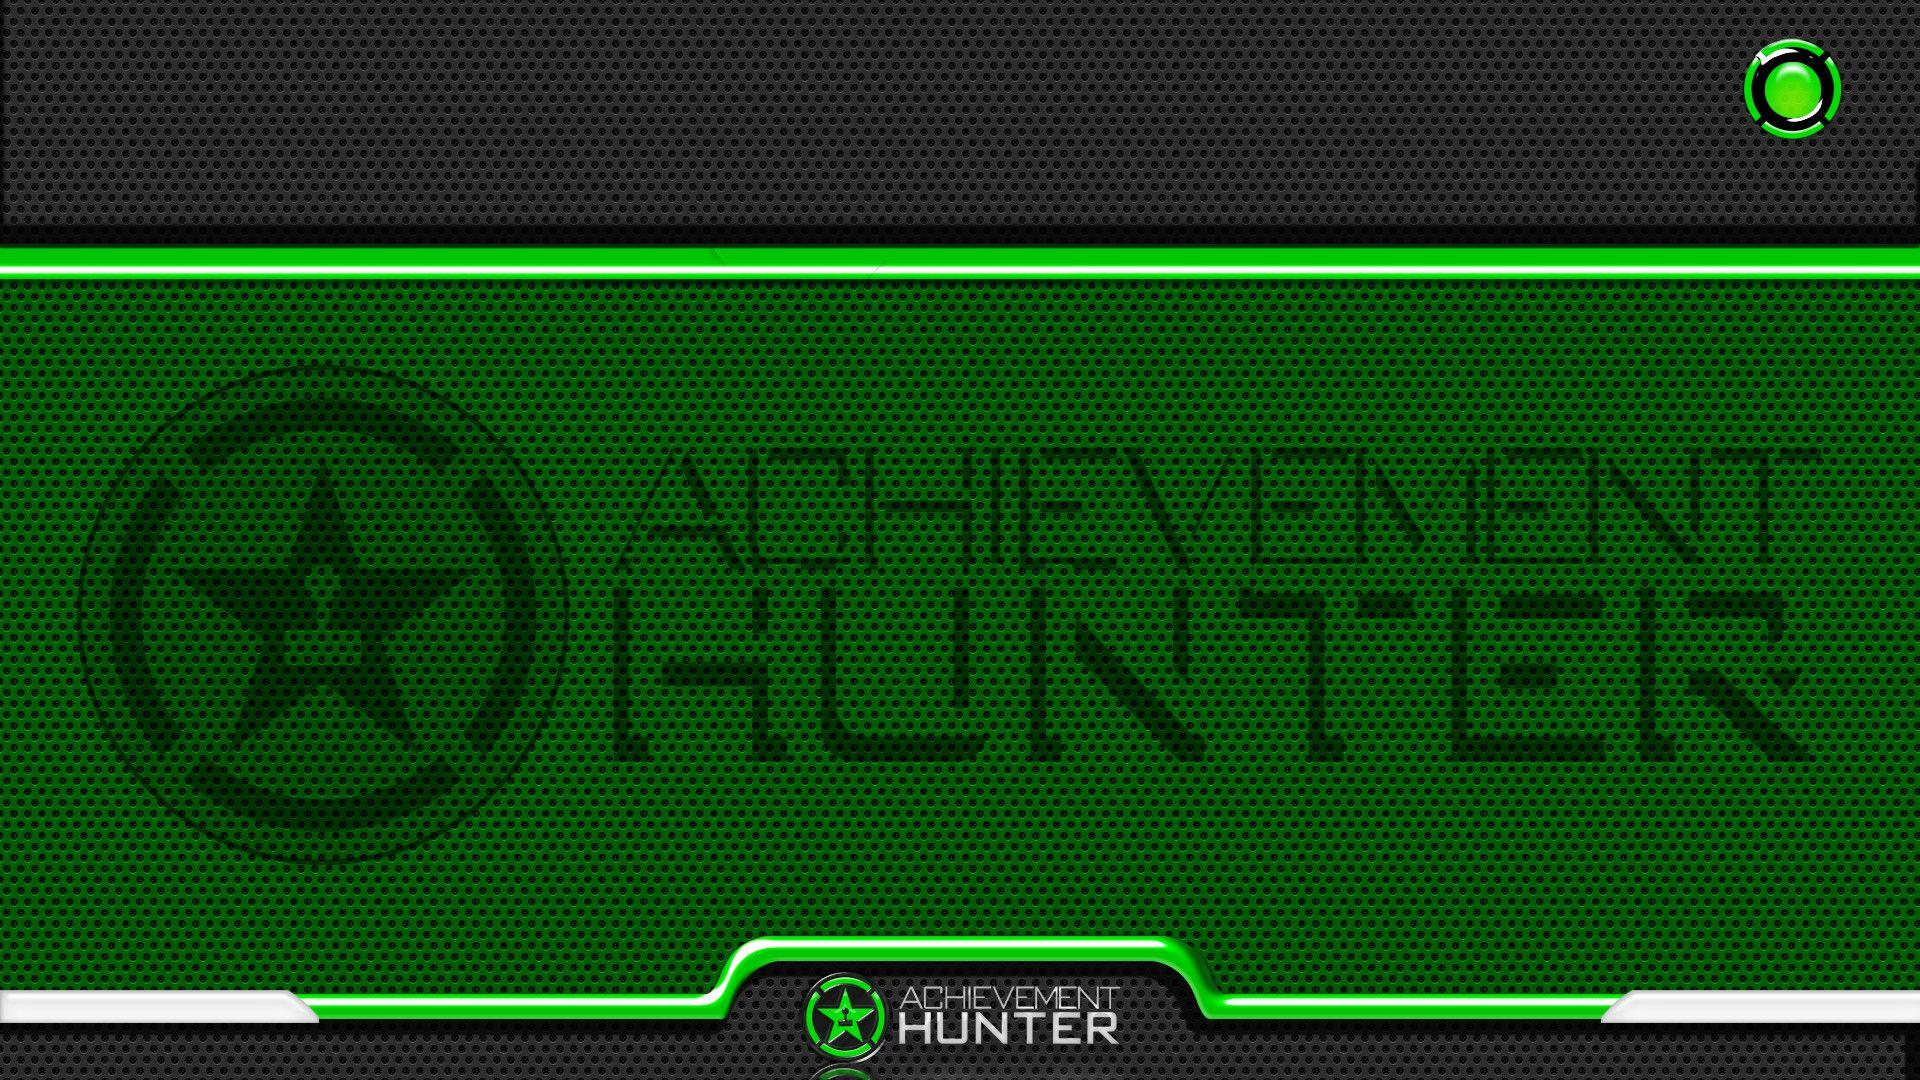 Achievement Hunter Iphone Wallpapers Reddit Tumblr Wallpaper Cave